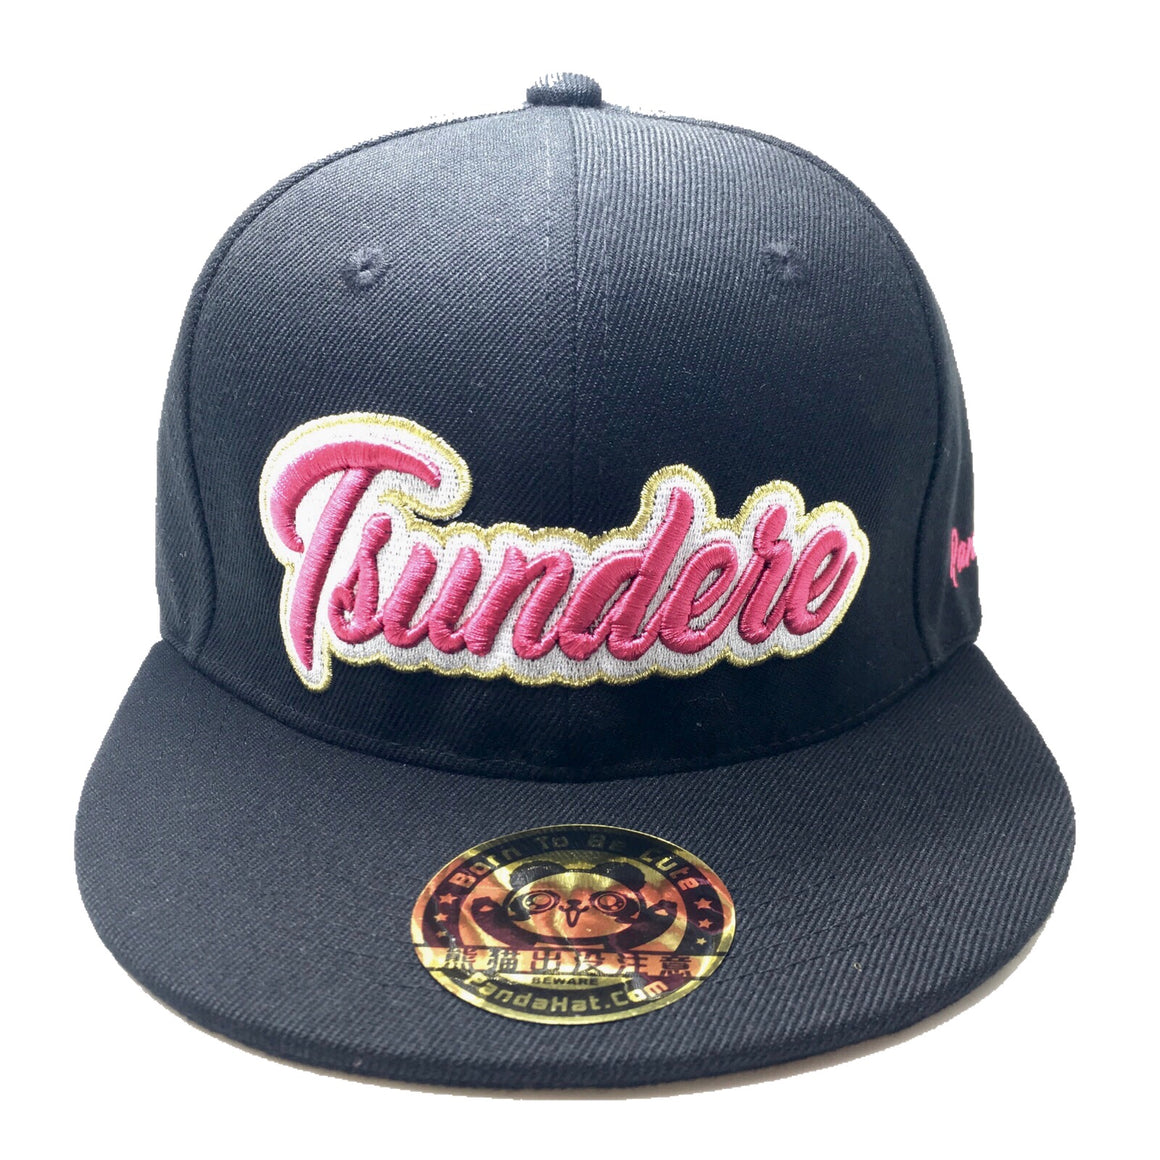 TSUNDERE CURSIVE 3D PUFF EMBROIDERY HAT